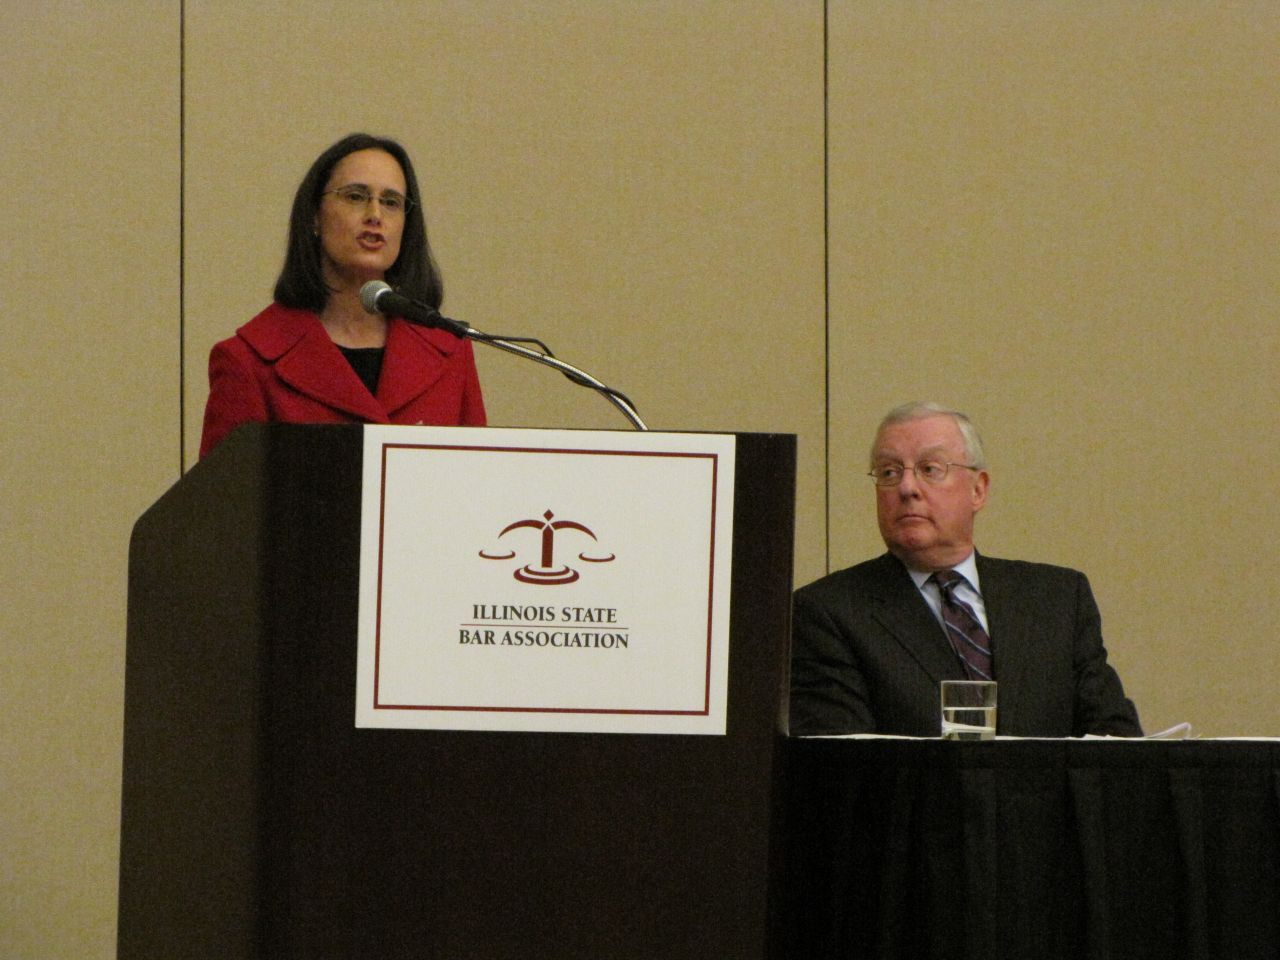 Illinois Attorney General Lisa Madigan delivers the keynote speech.